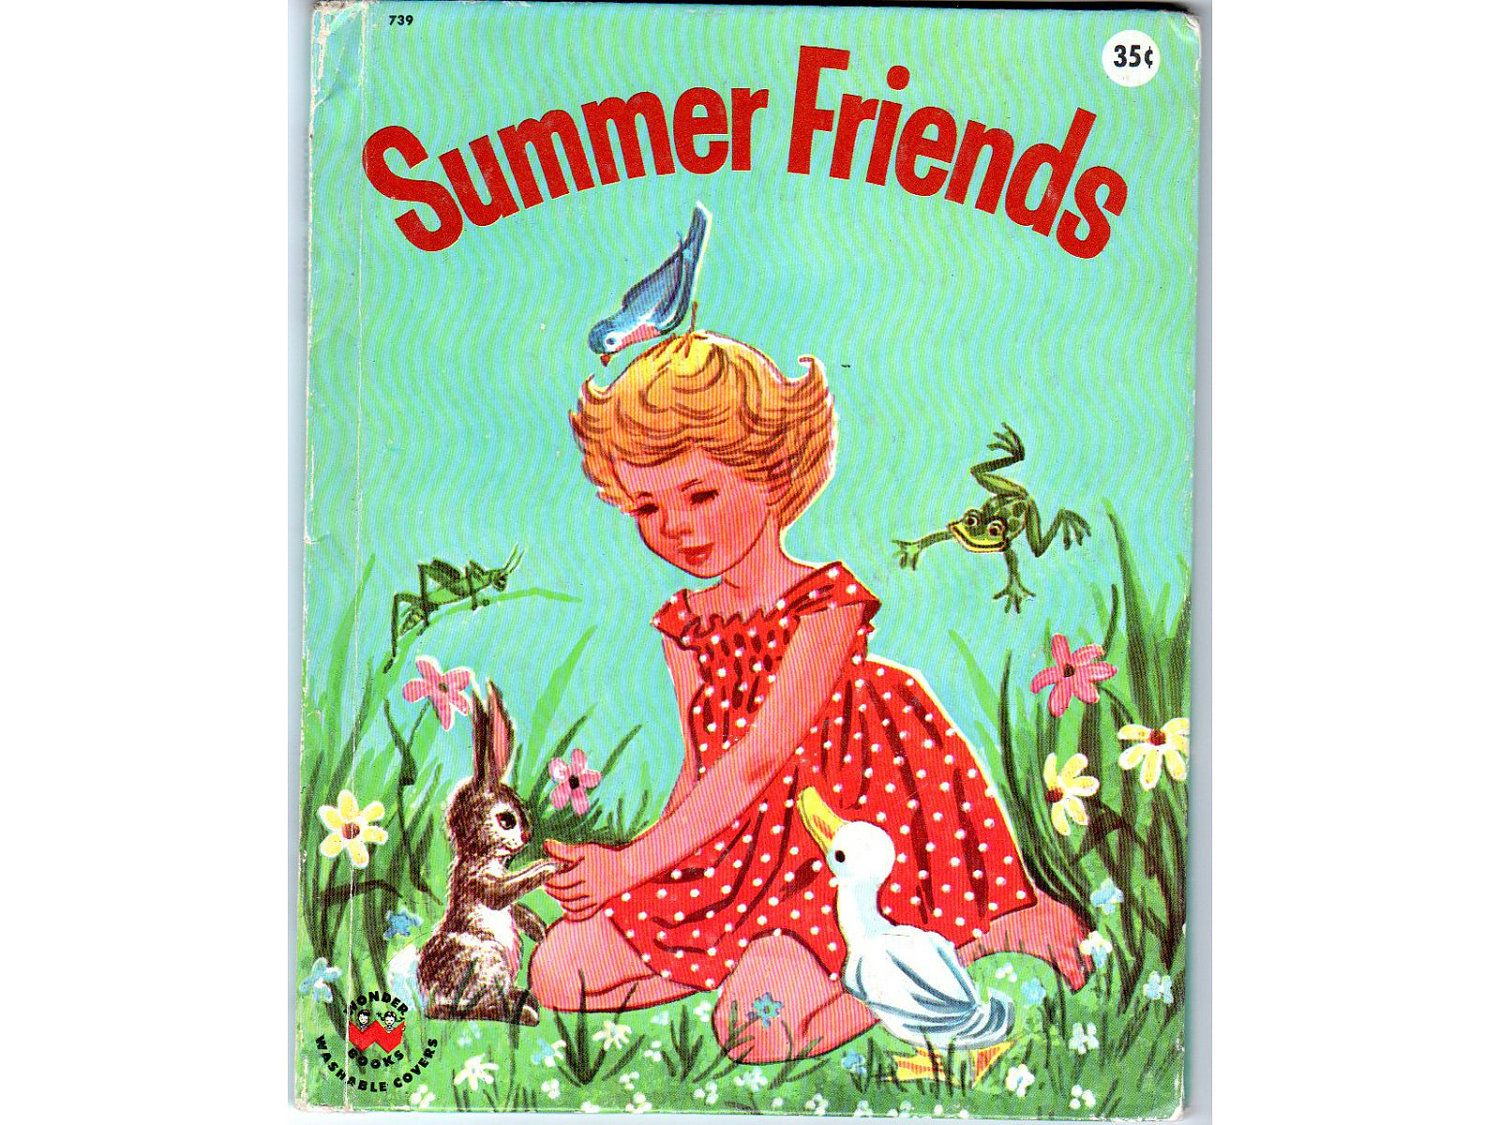 'Summer Friends' By Jeanette Krinsky, pictures by Ruth Wood. Published in 1960.